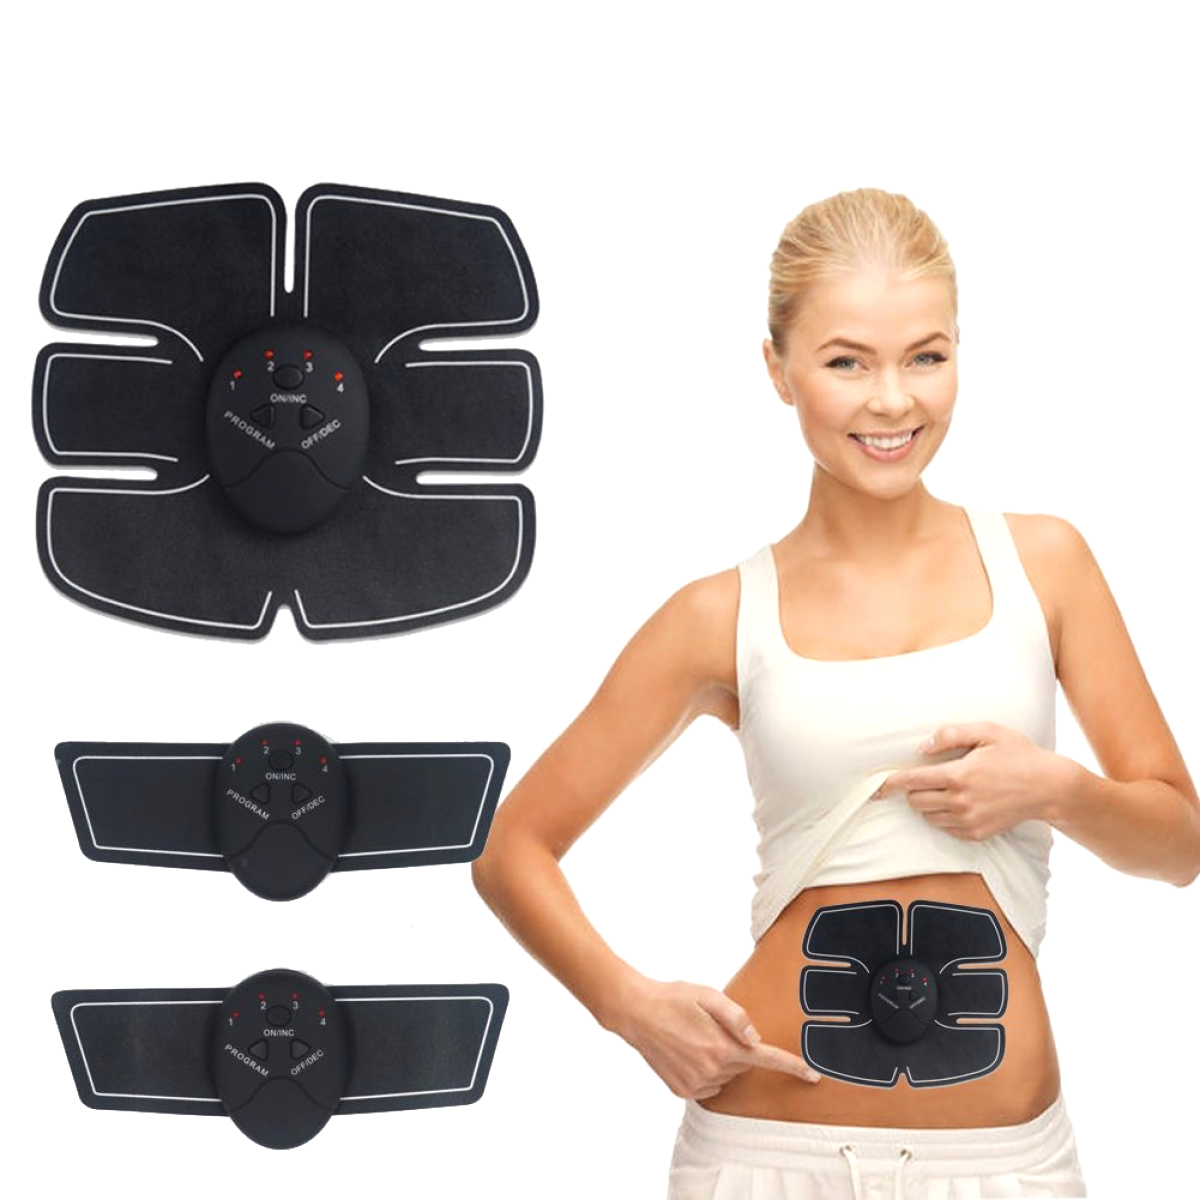 EMS Abs Toning Belt Muscle Toner Trainer Wireless Body Gym Workout Home Fitness